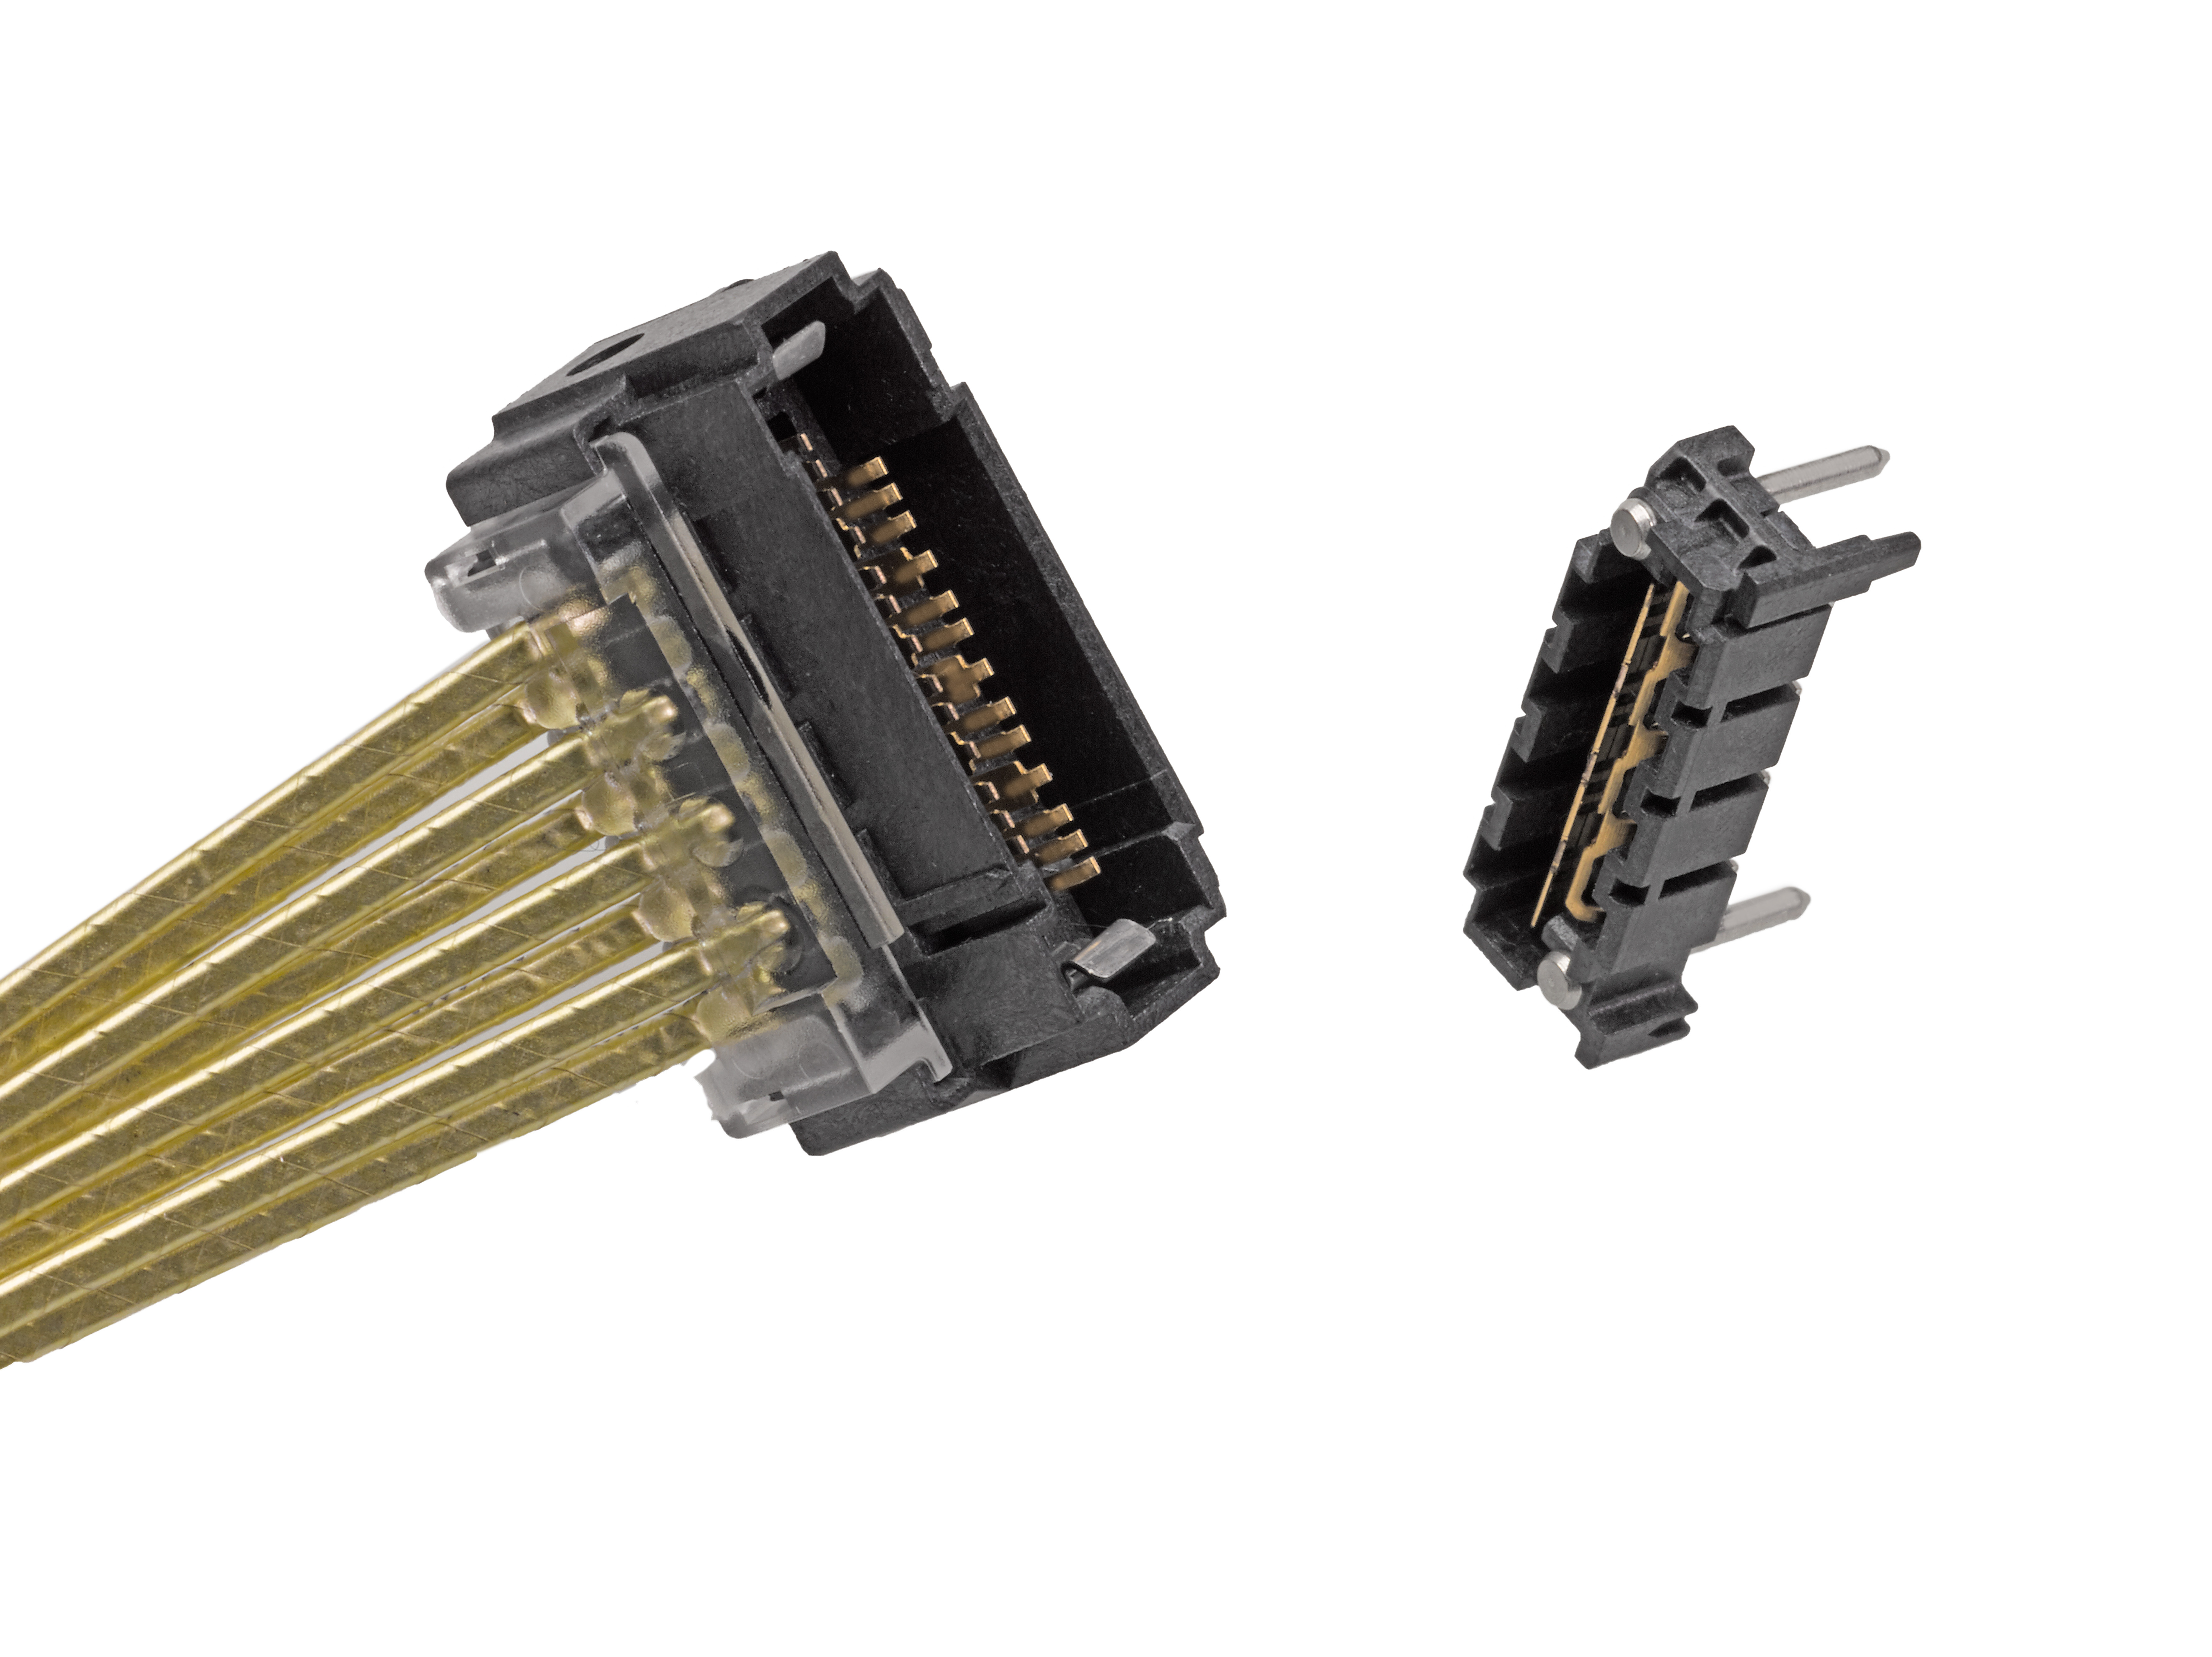 Molex Spotlights High-Speed Data Connectivity and Expertise